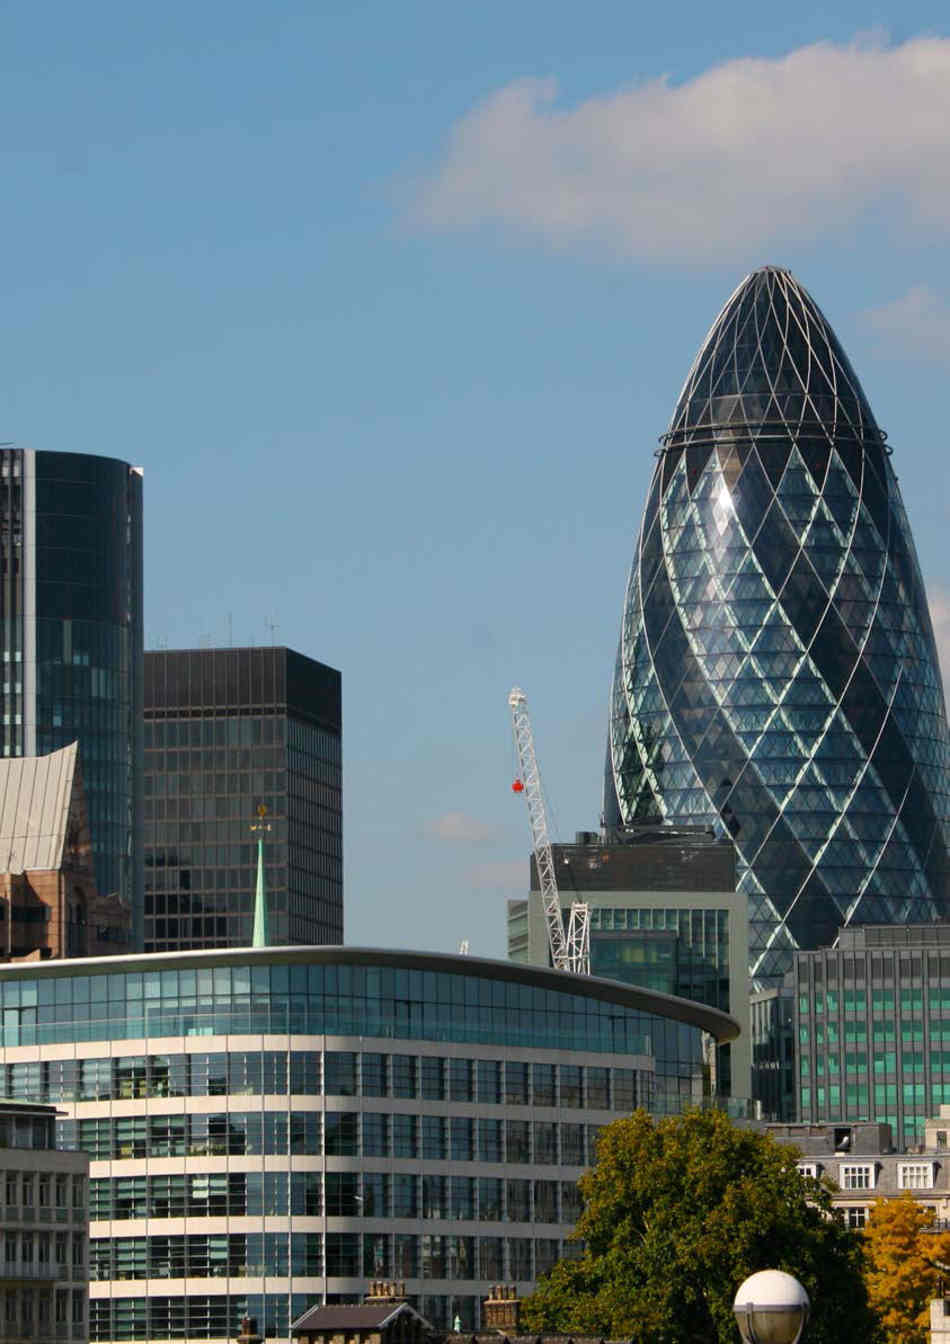 A view of the gherkin building in London